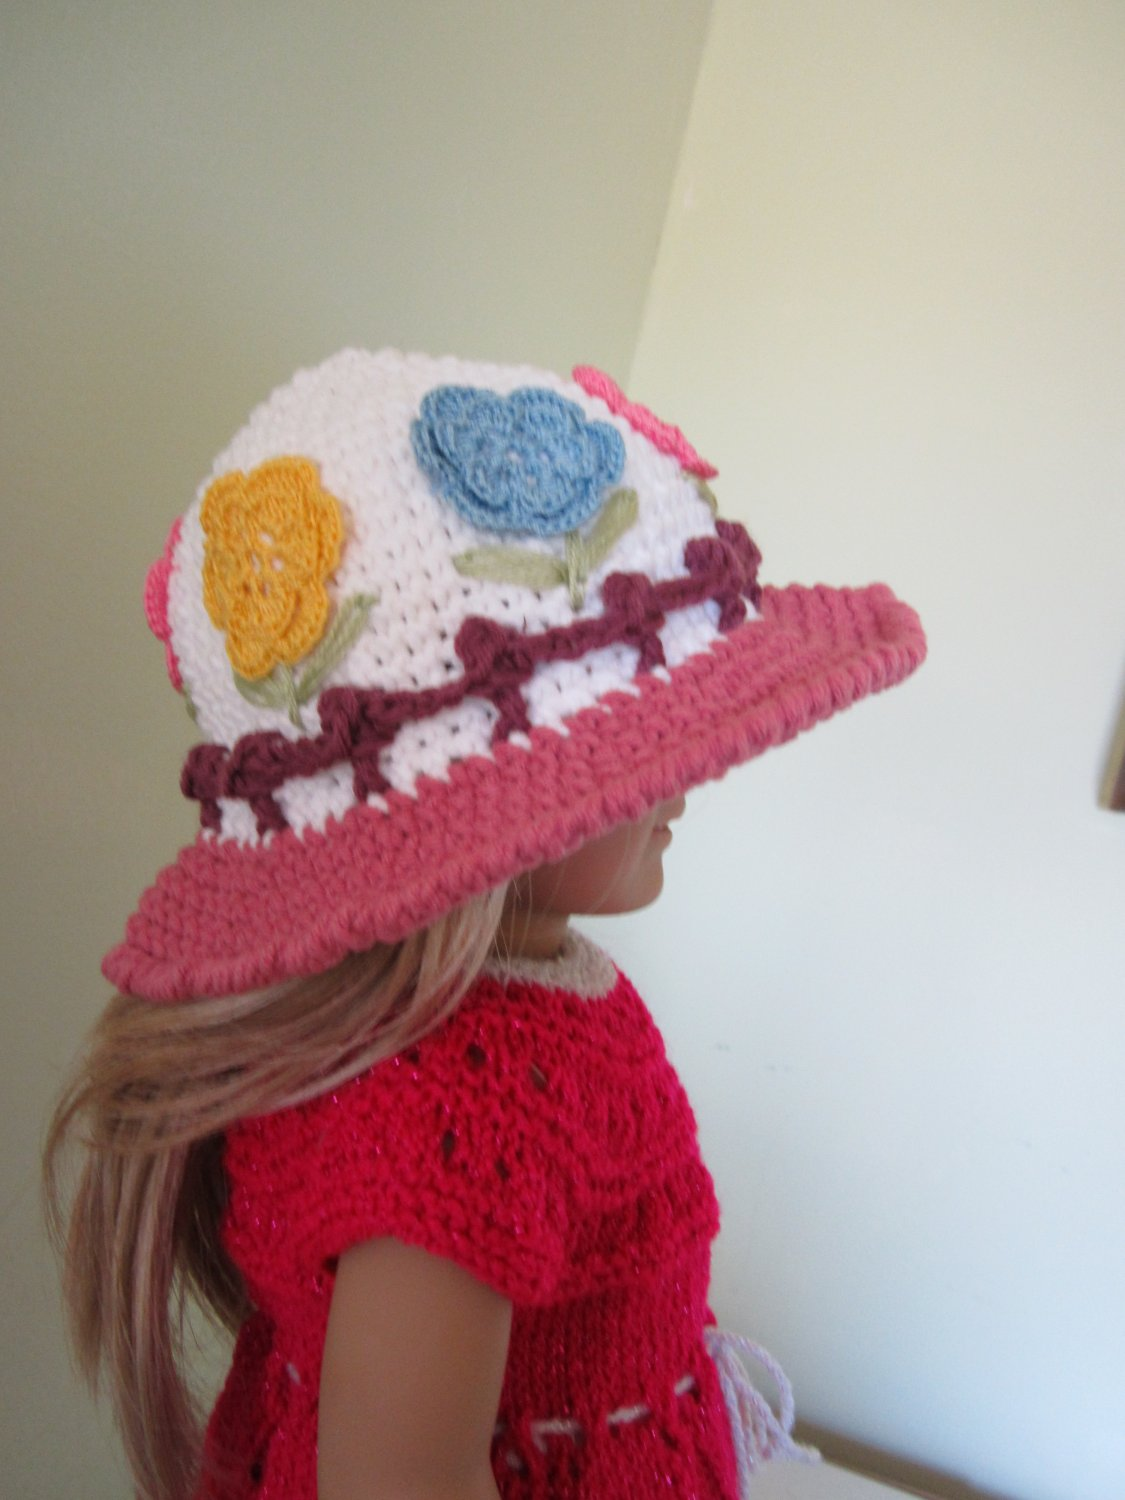 Crochet hat for American girl doll and Waldorf doll